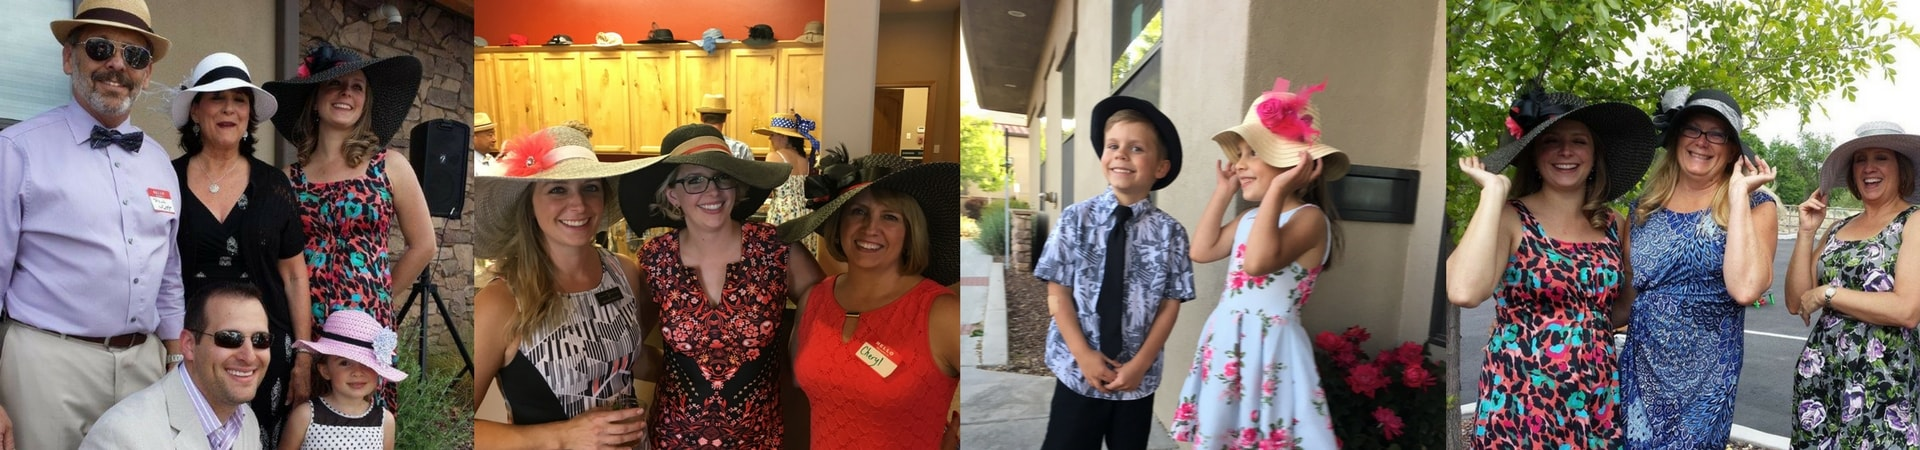 A collage of photos showing Distinctive Dental Care's Annual Kentucky Derby Party